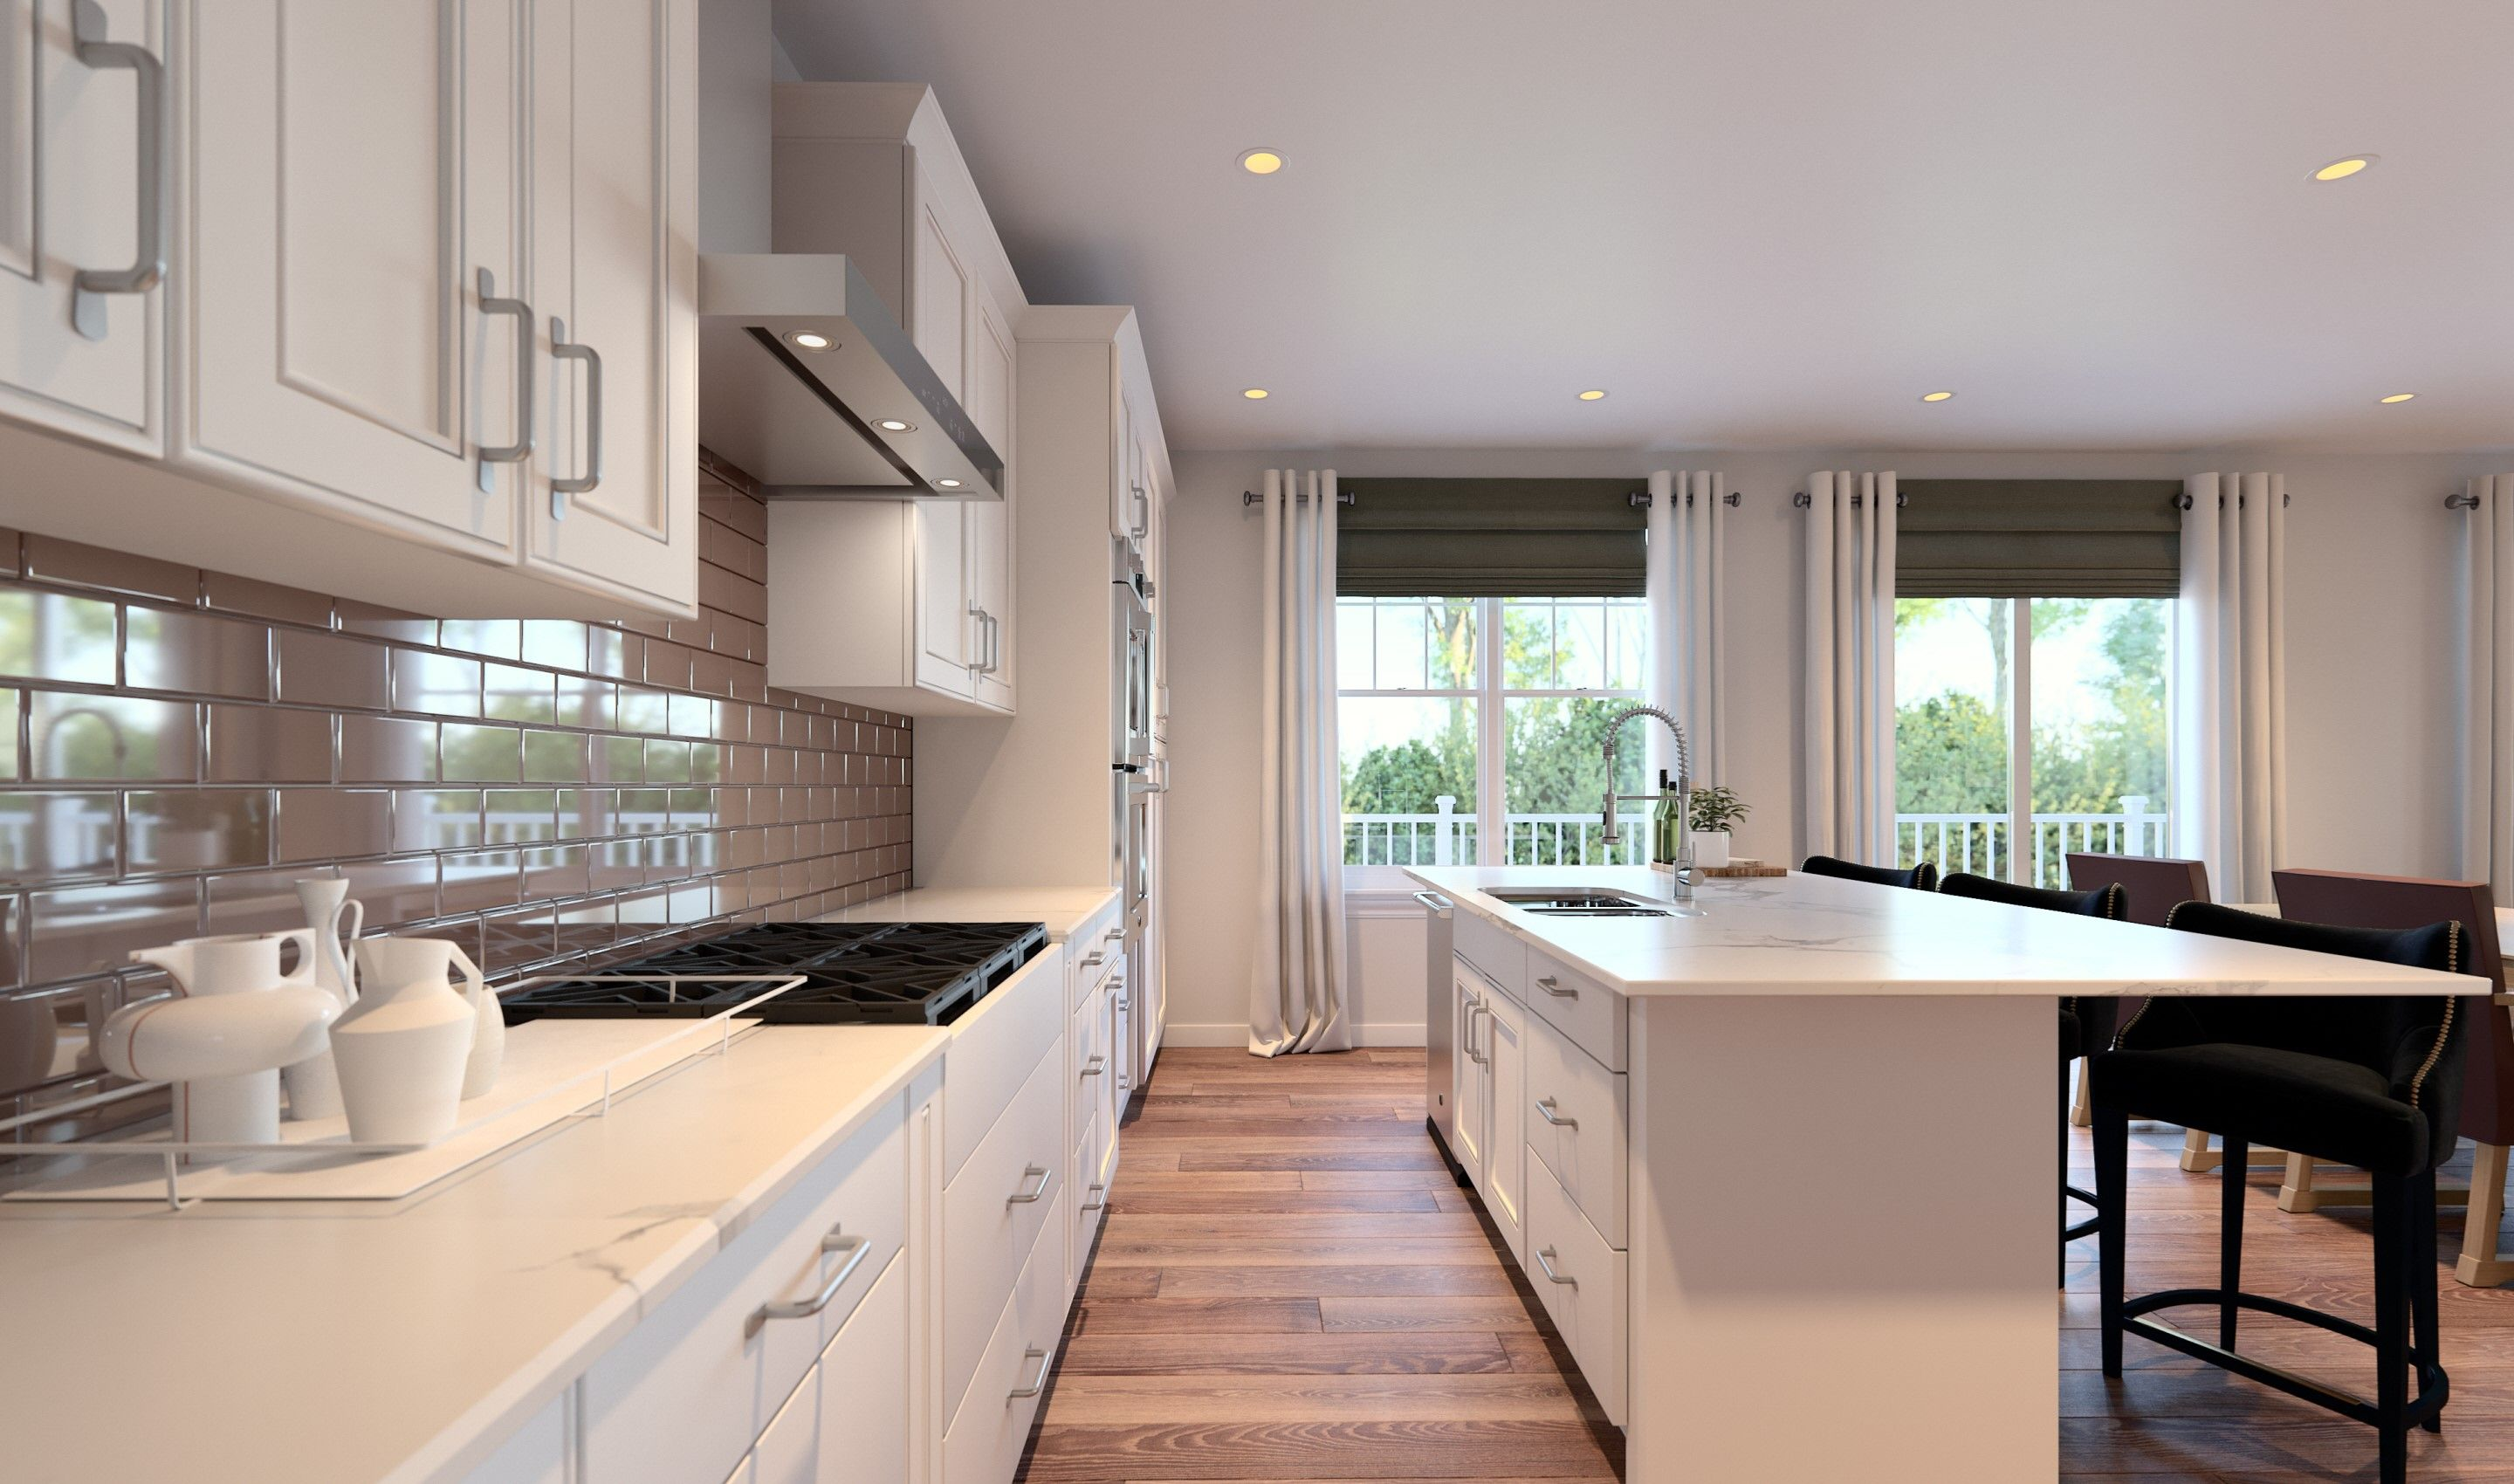 Kitchen featured in the Ruskin By K. Hovnanian® Homes in Chicago, IL